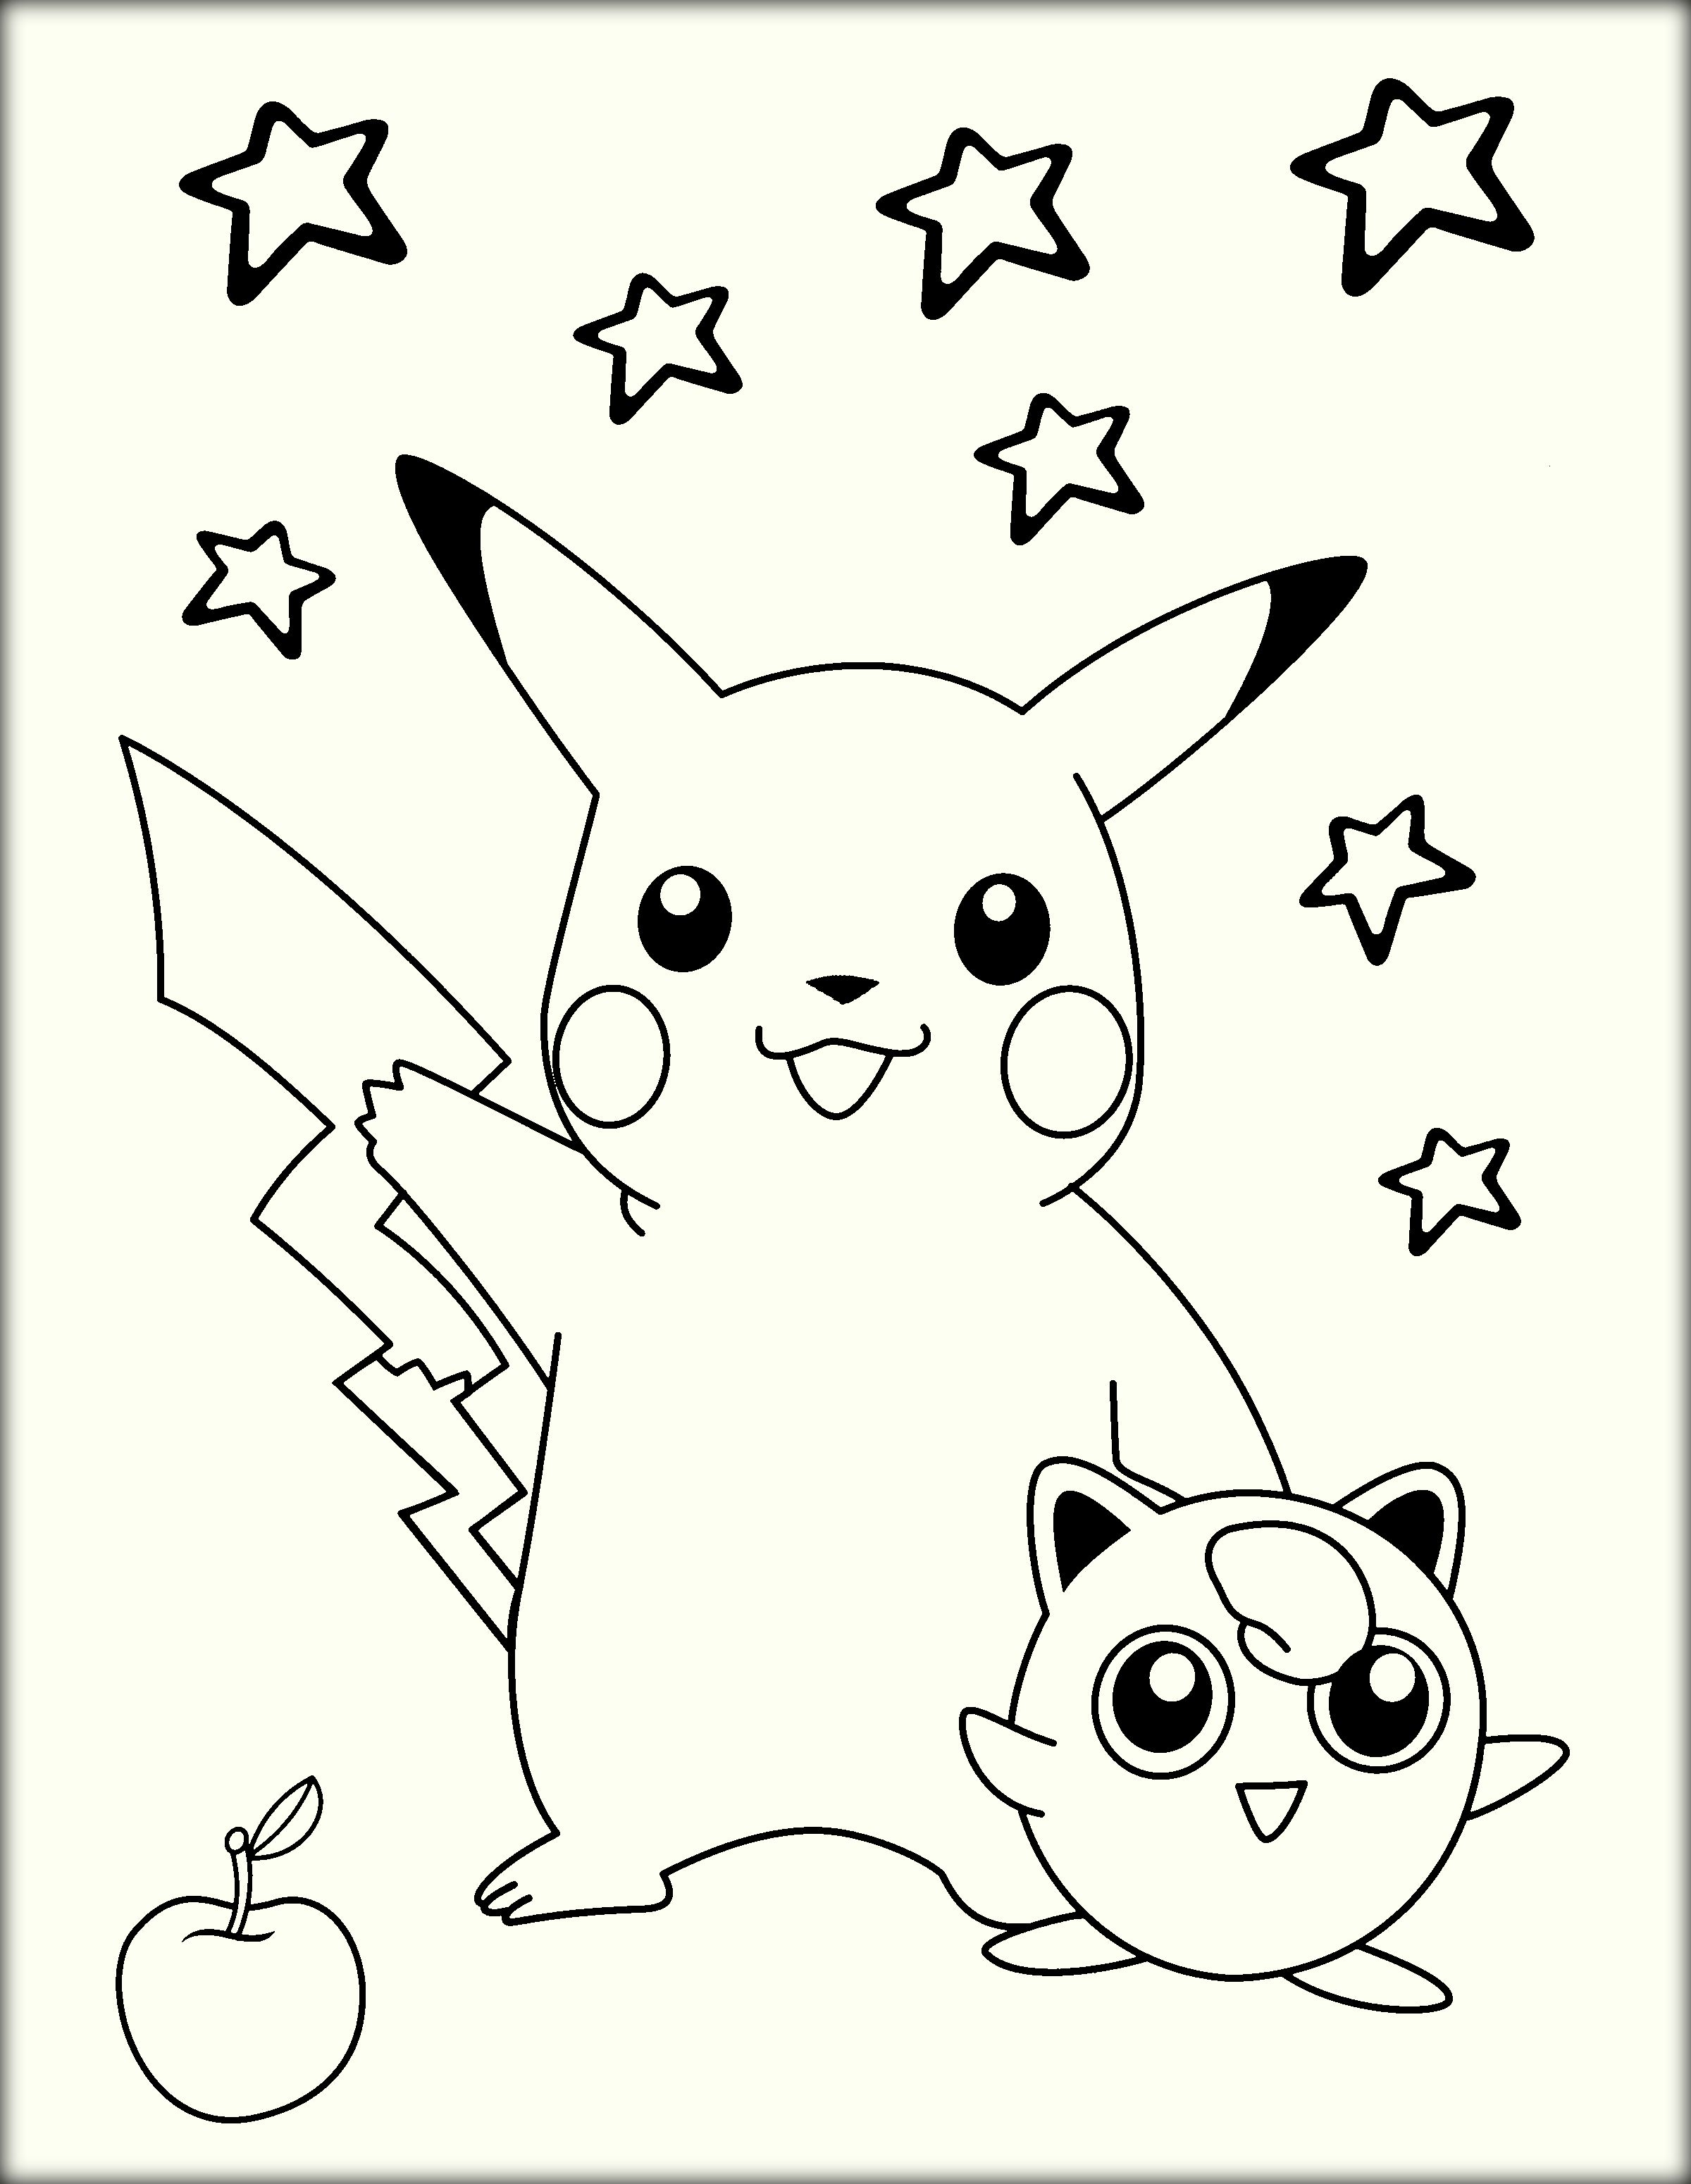 2400x3100 Fashionable Idea Pokemon Printables Coloring Pages Top 75 Free